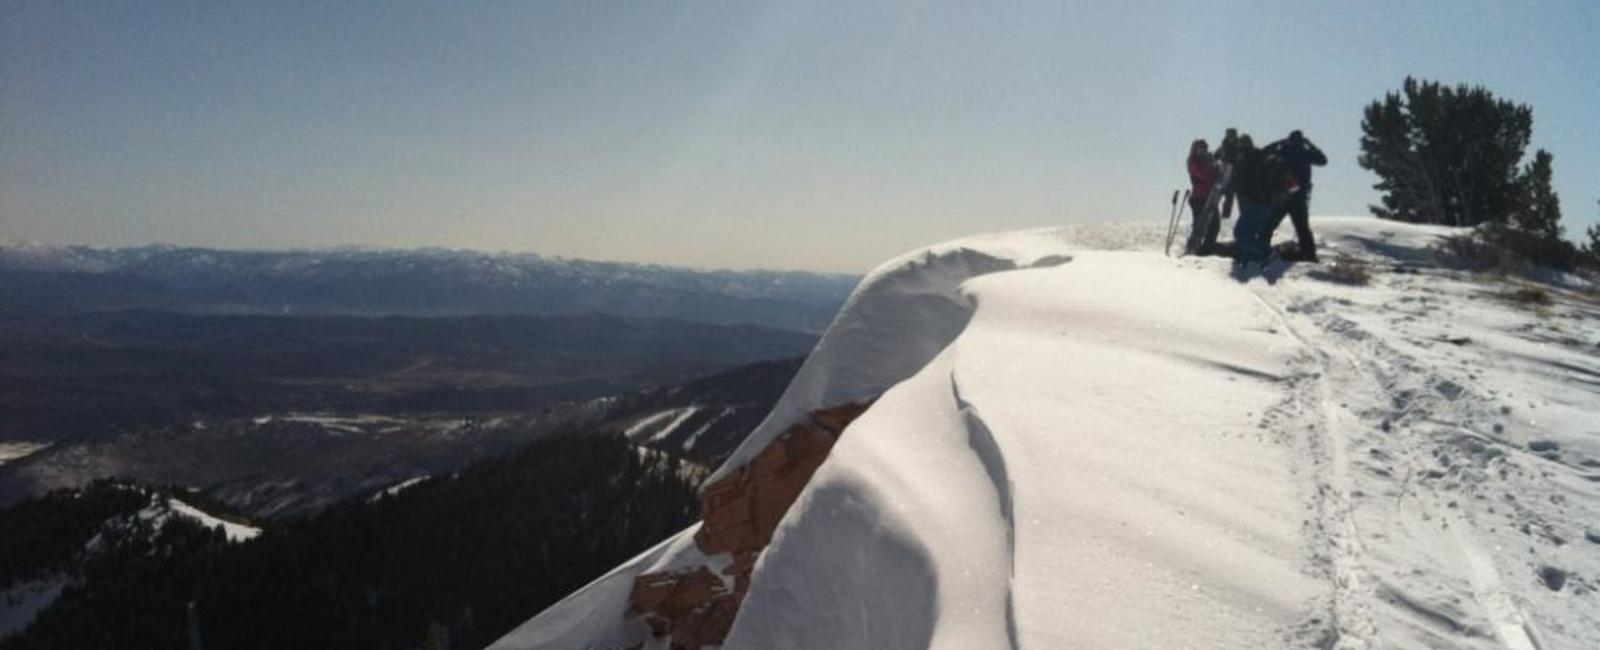 Winter Isnt Over Till Its Over >> It S Not Over Until I Say It S Over Ski Utah